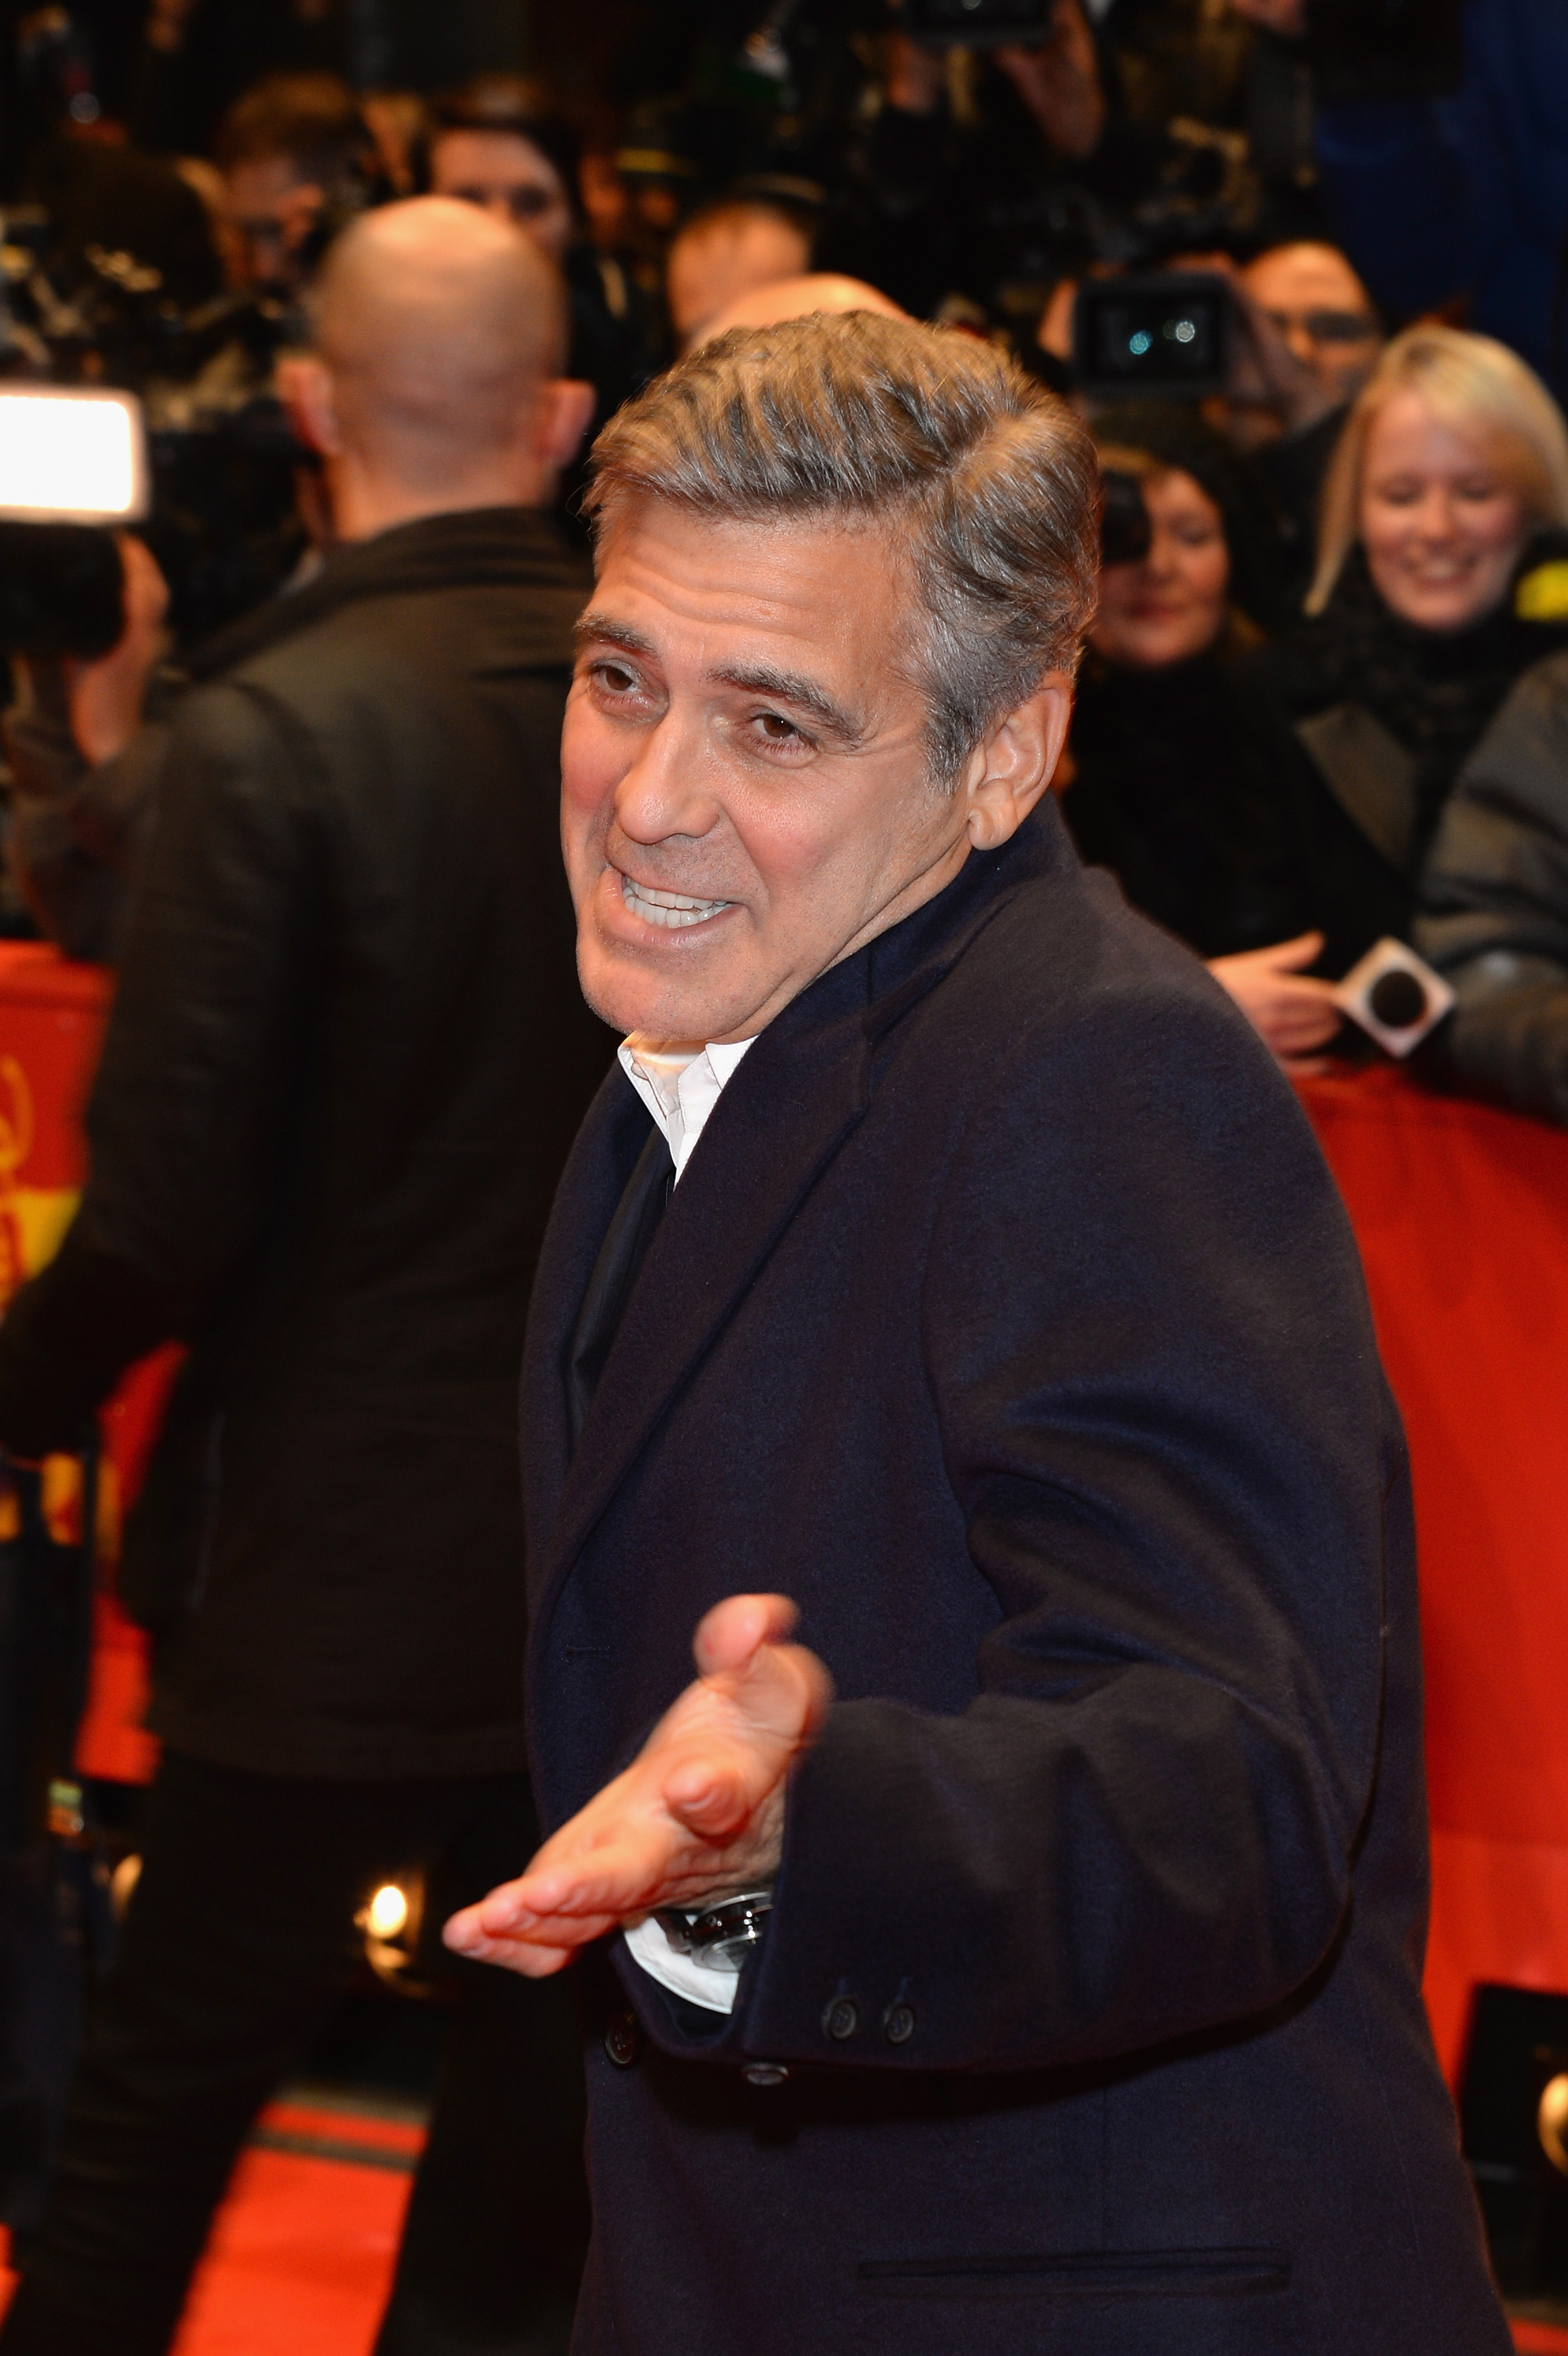 George Clooney attends The Monuments Men premiere during the 64th Berlinale International Film Festival in Berlin on Feb. 8, 2014